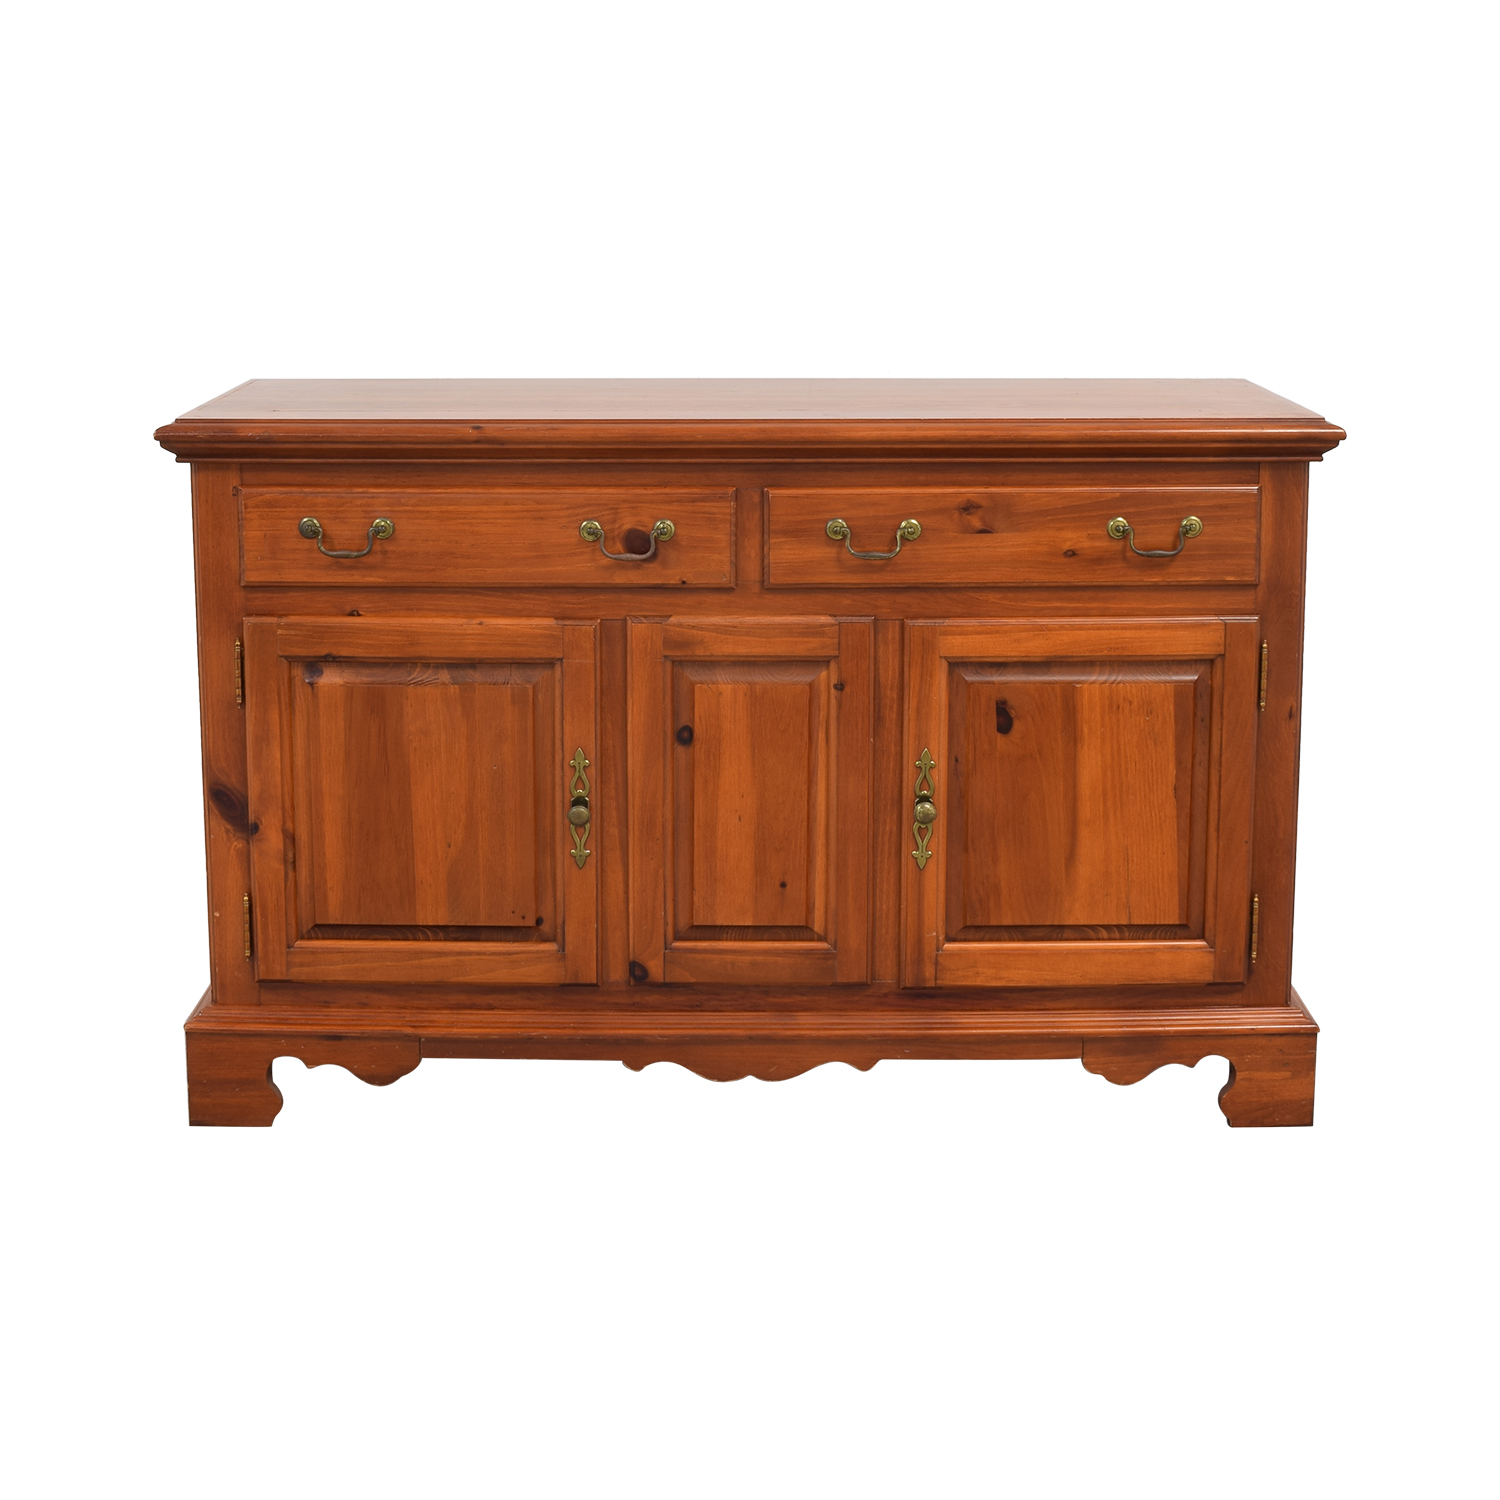 Broyhill Furniture Broyhill Serving Sideboard Storage